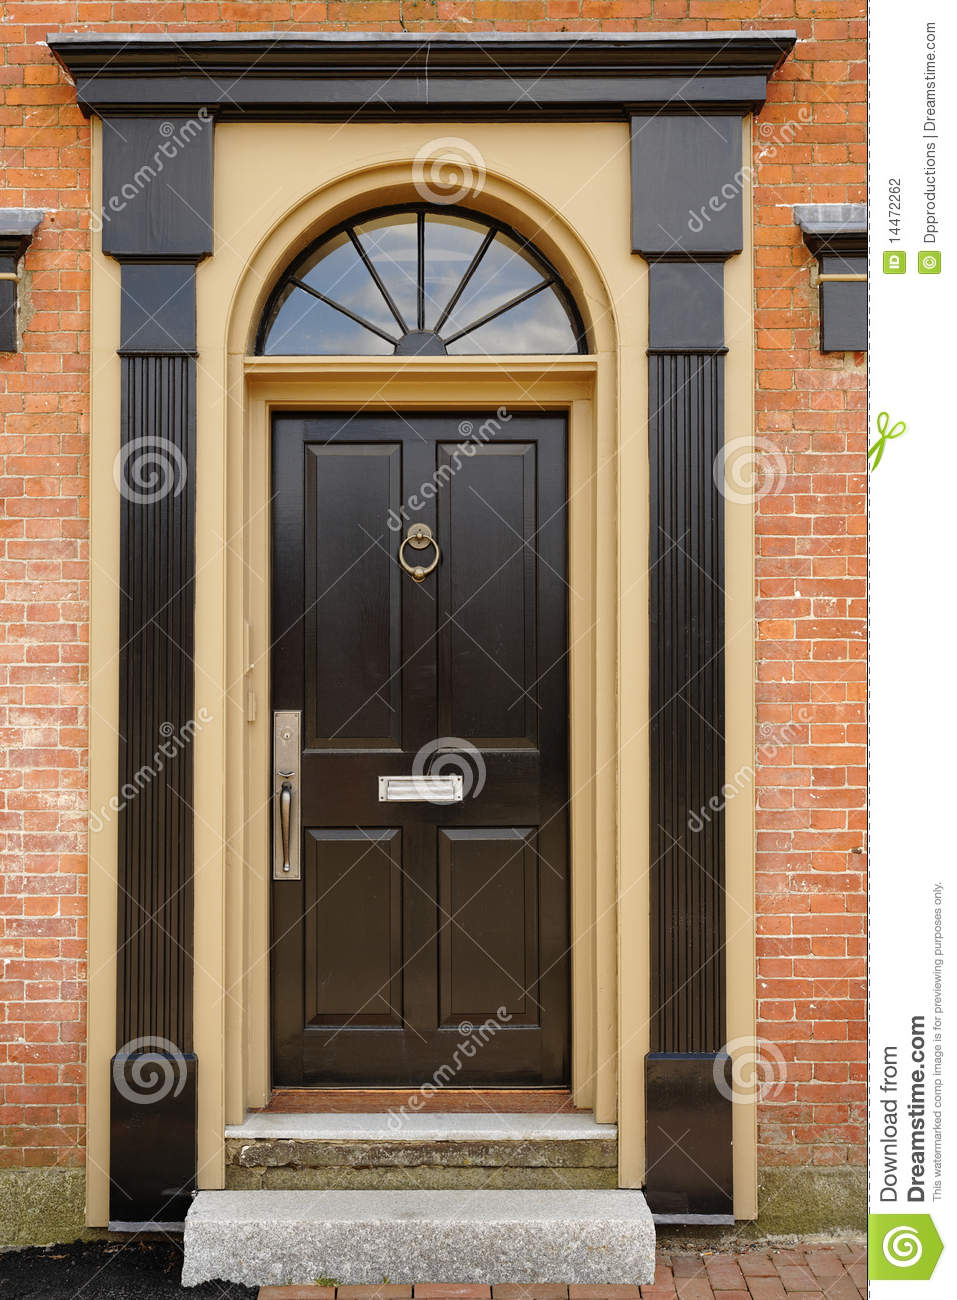 Plans For Building A New House Elegant Front Door In A Brick Building Stock Photography